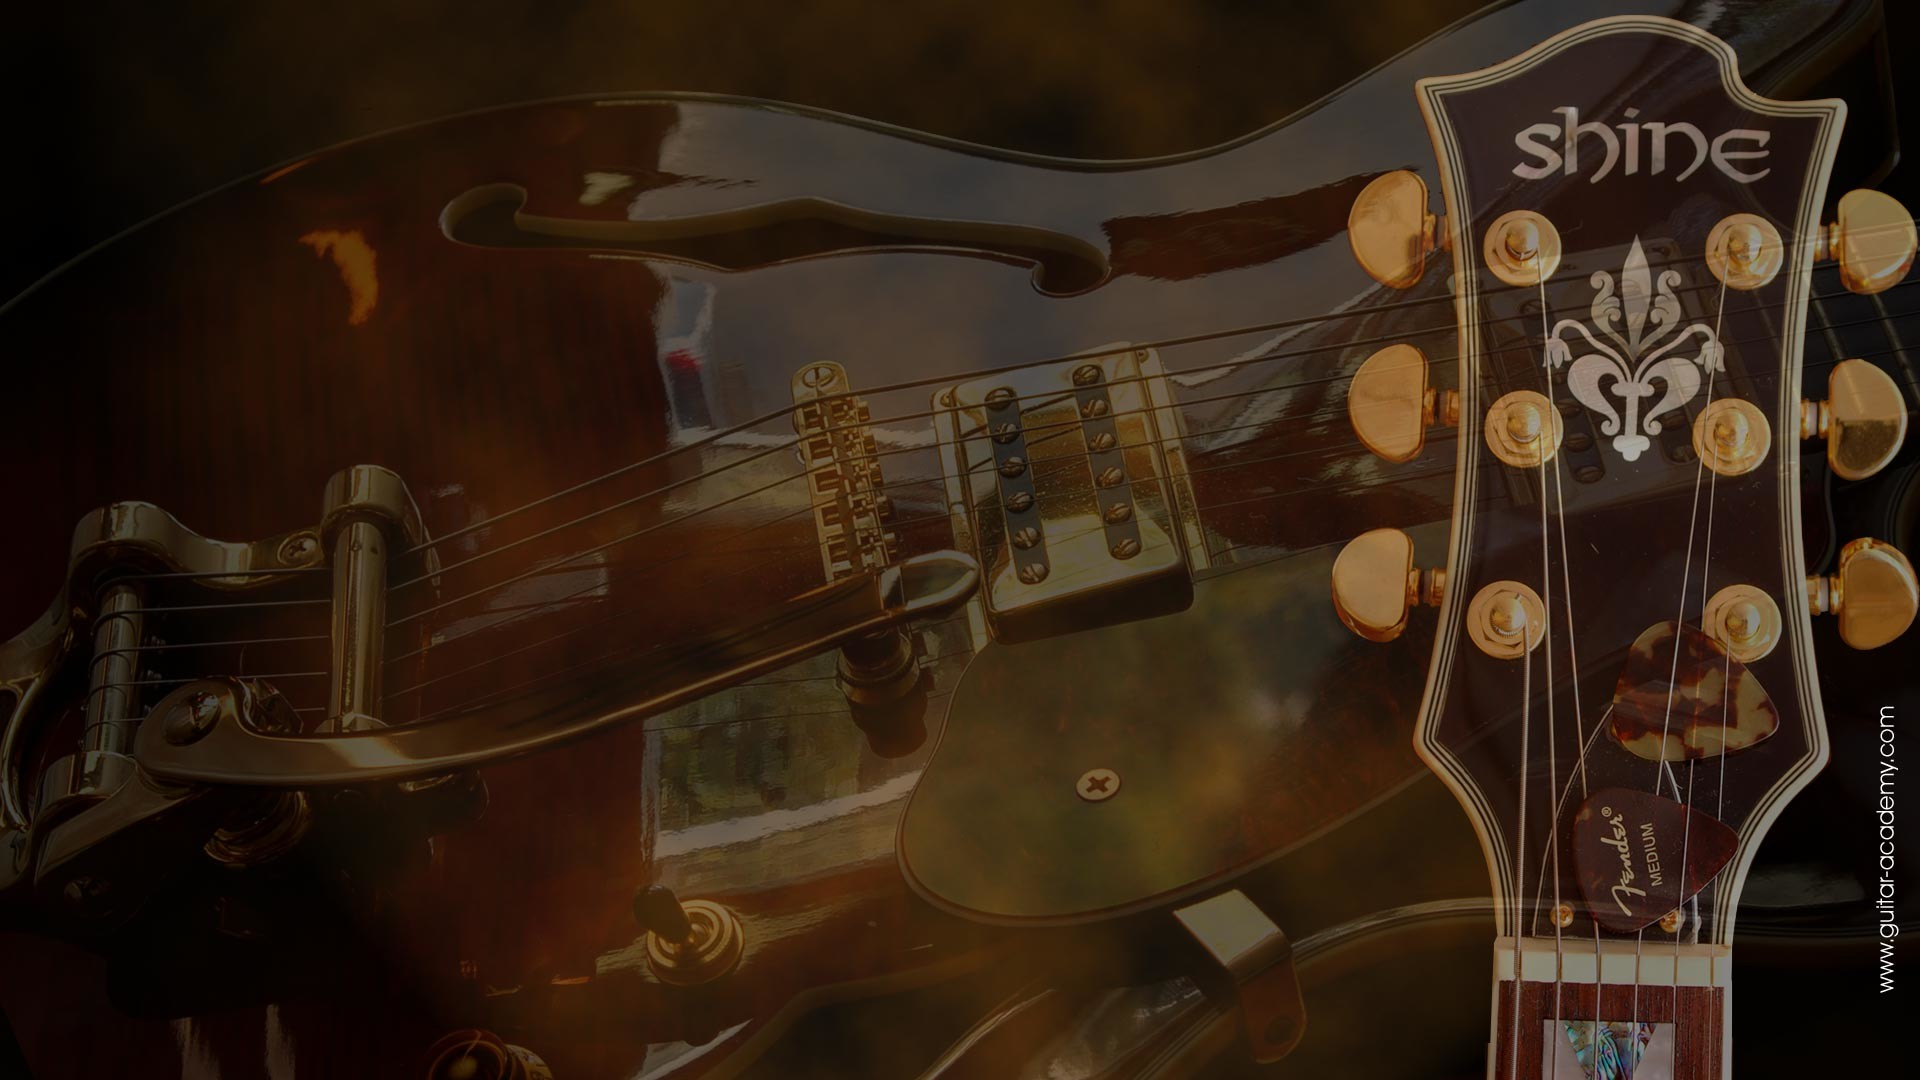 1920x1080 Guitar wallpaper, Shine semi-acoustic guitar, Gibson style